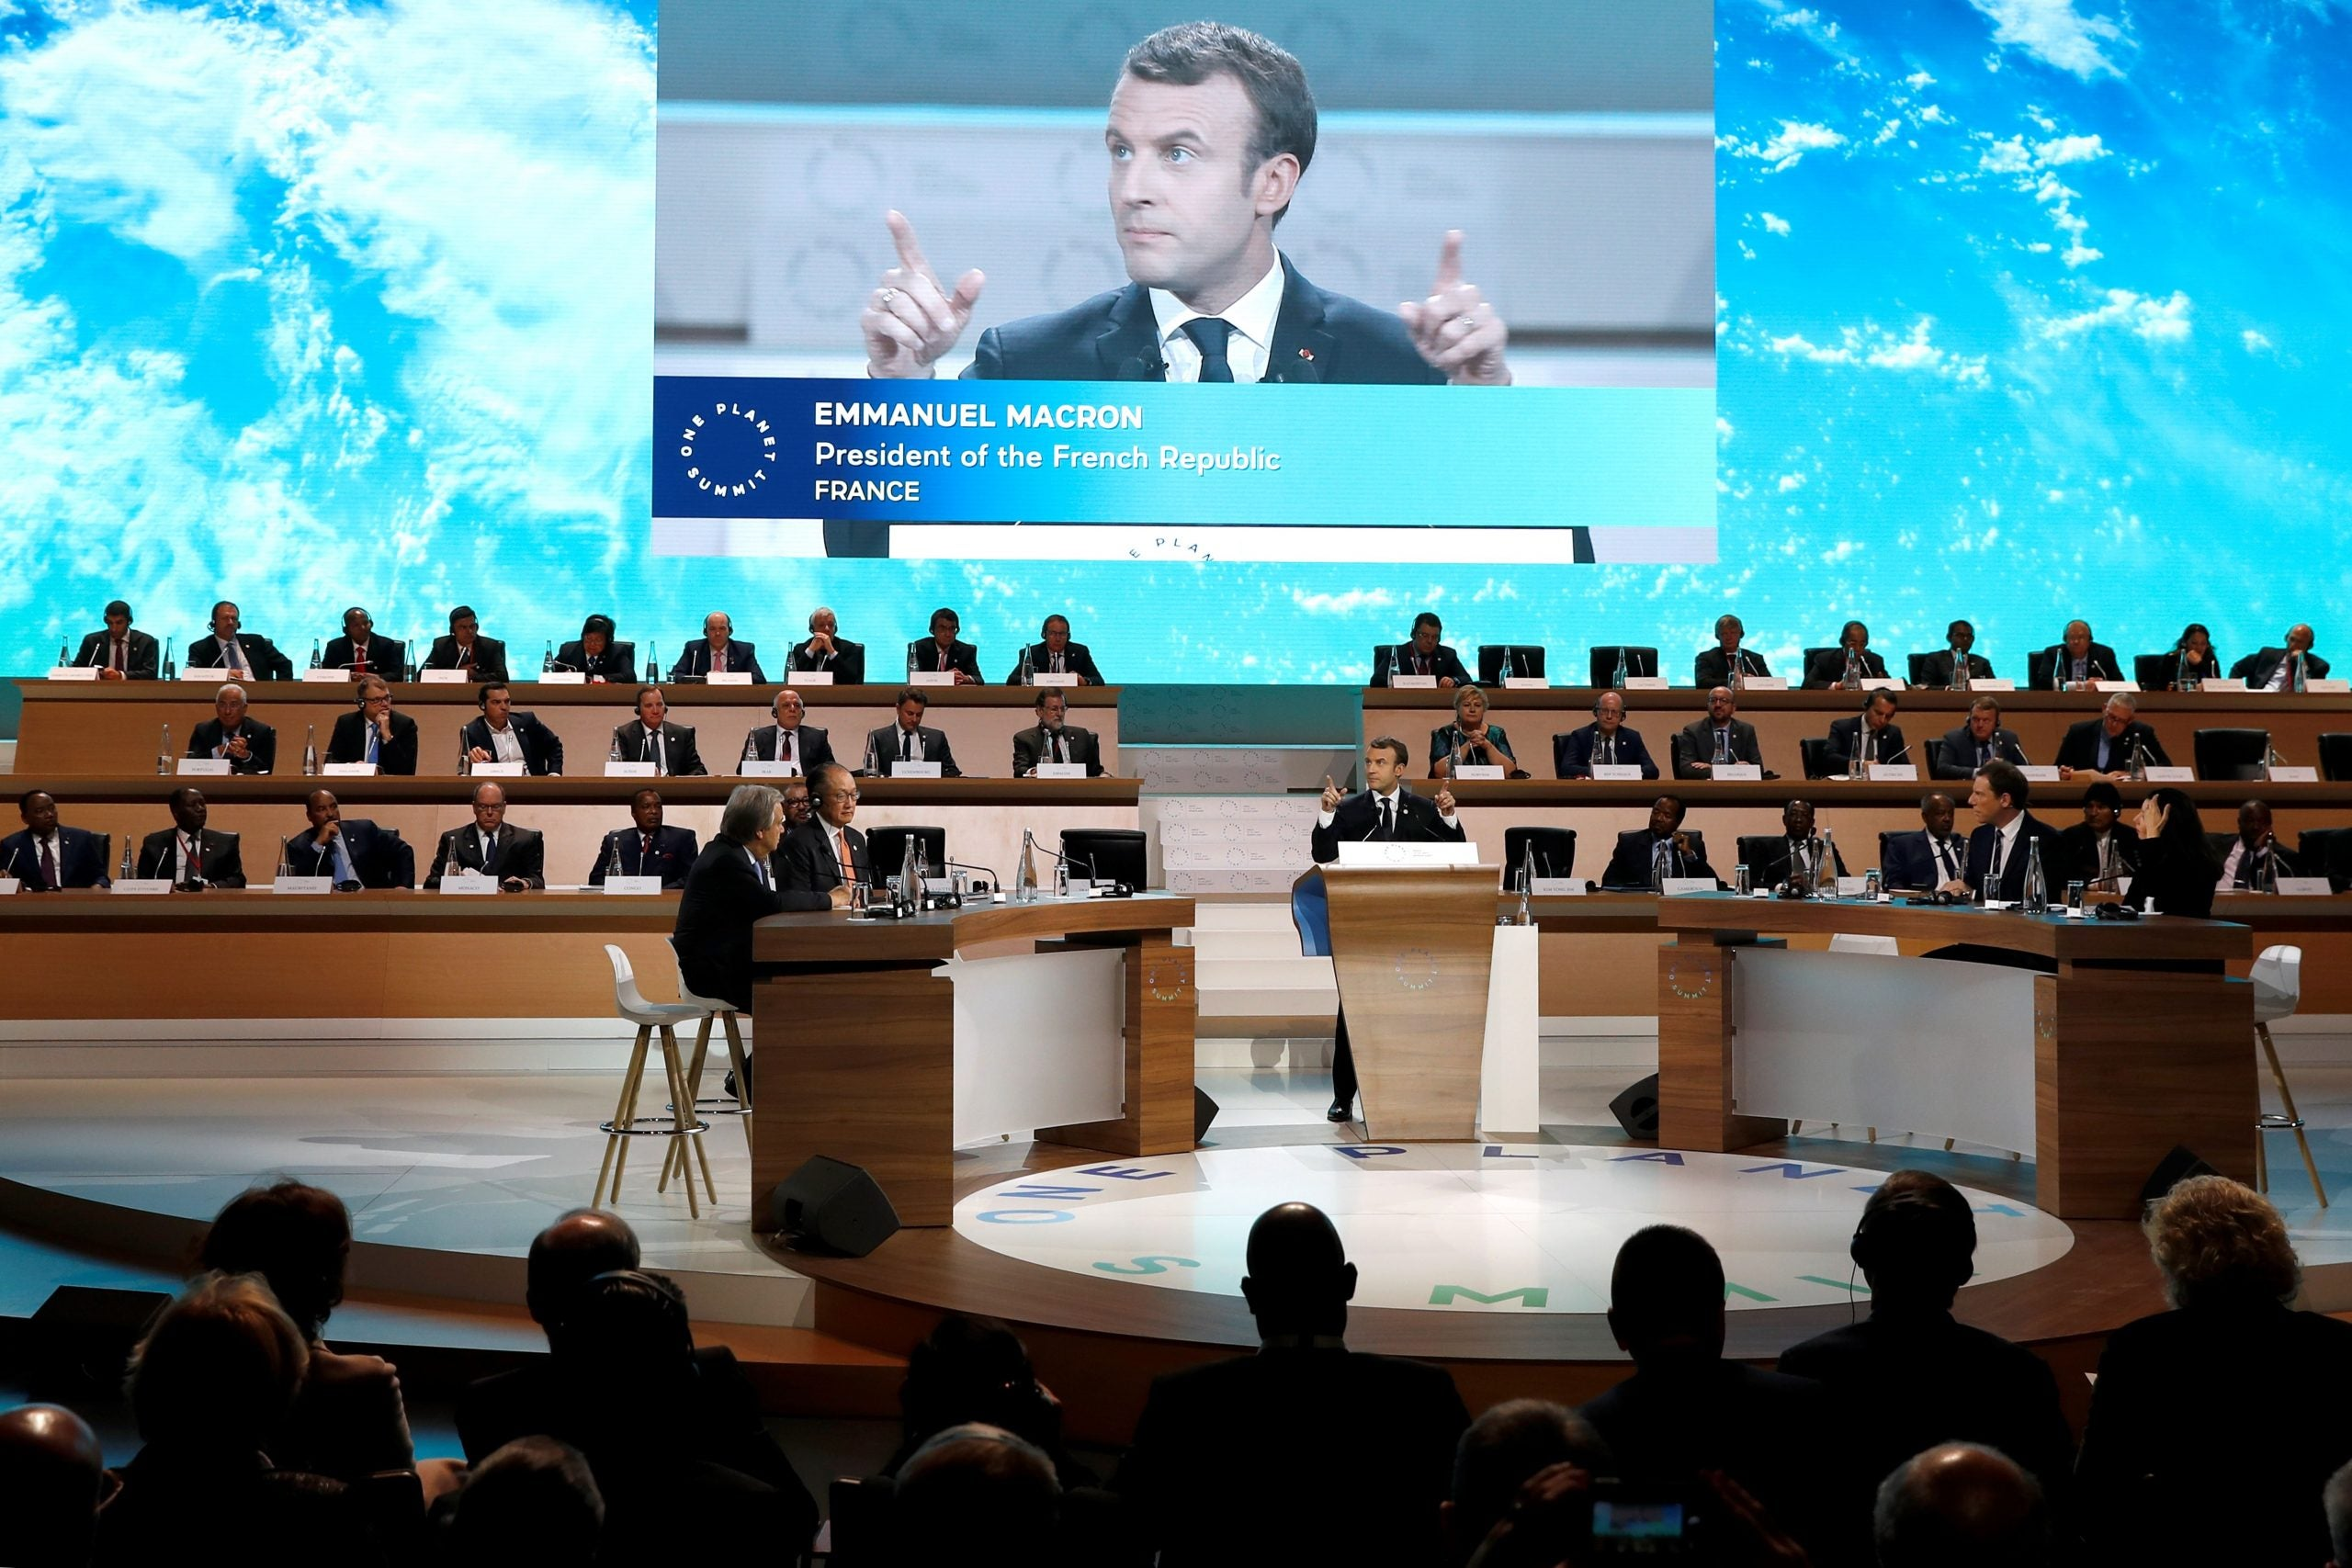 Emmanuel Macron isn't making our planet great again, he's just talking about it